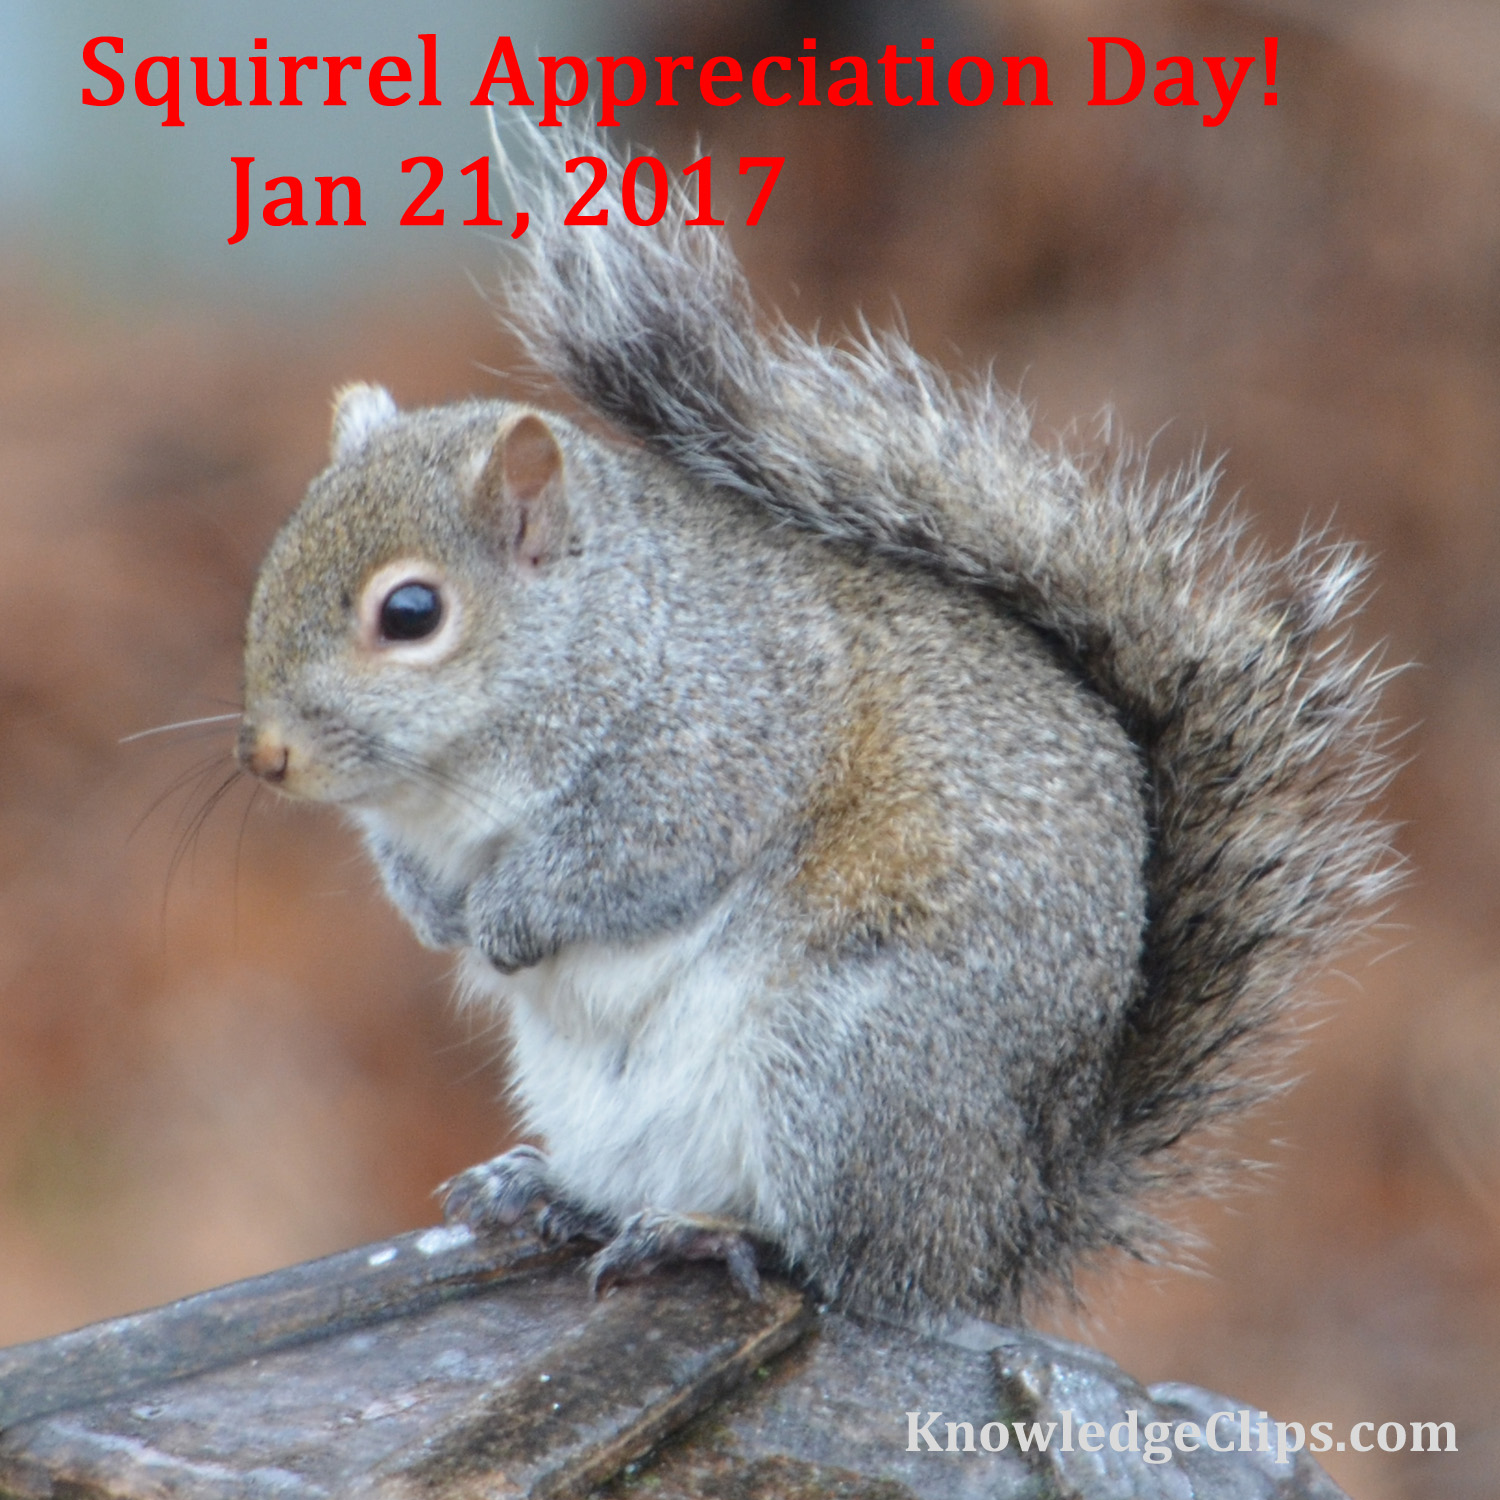 Squirrel Appreciation Day 2017